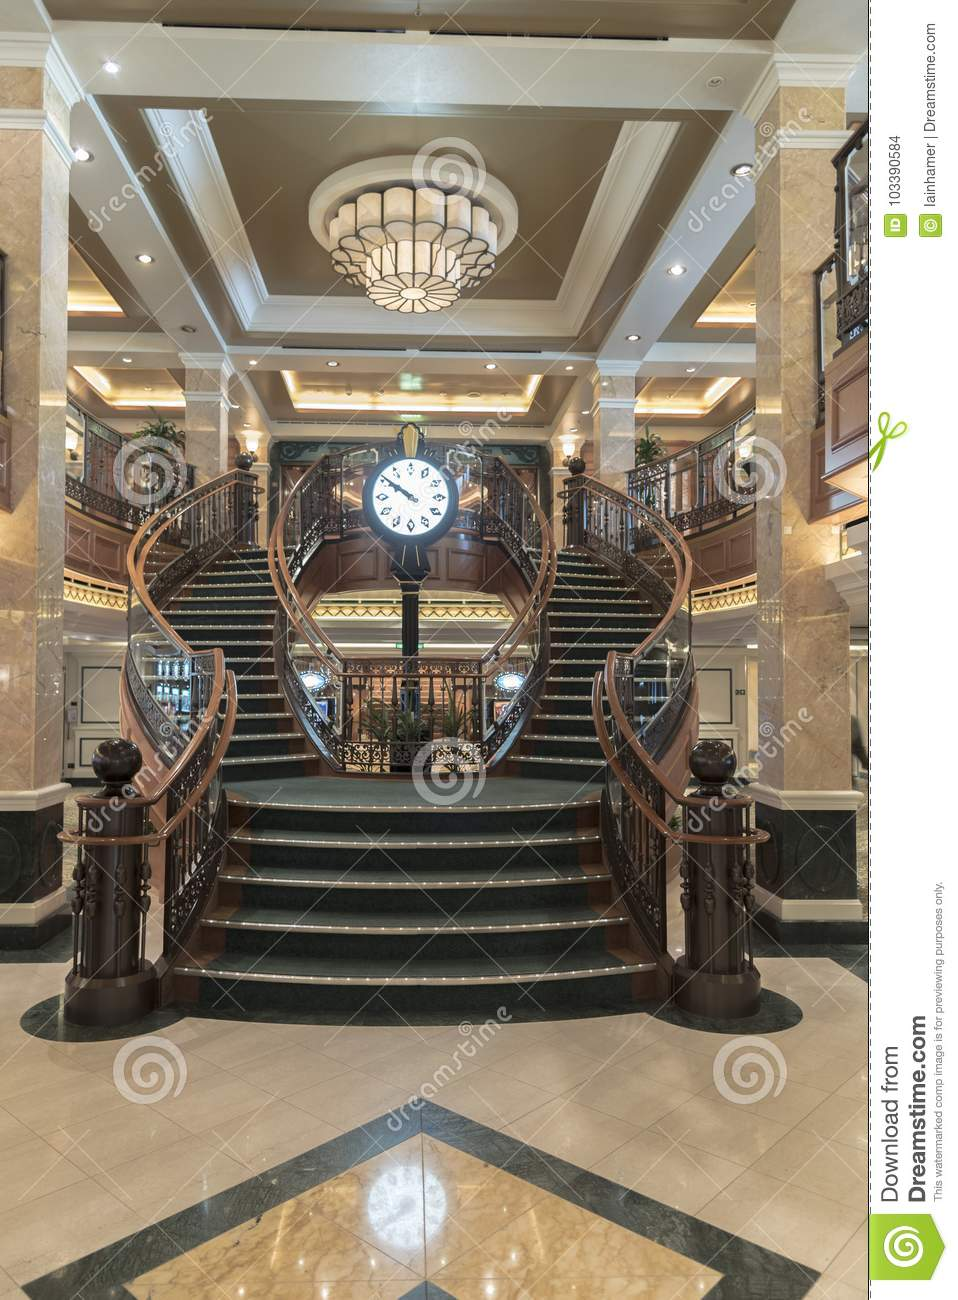 MS Queen Elizabeth Casino Staircase. One Of The Ornate Staircases On Board  MS Queen Elizabeth This One Being In The Casino Between Decks 2 And 3.